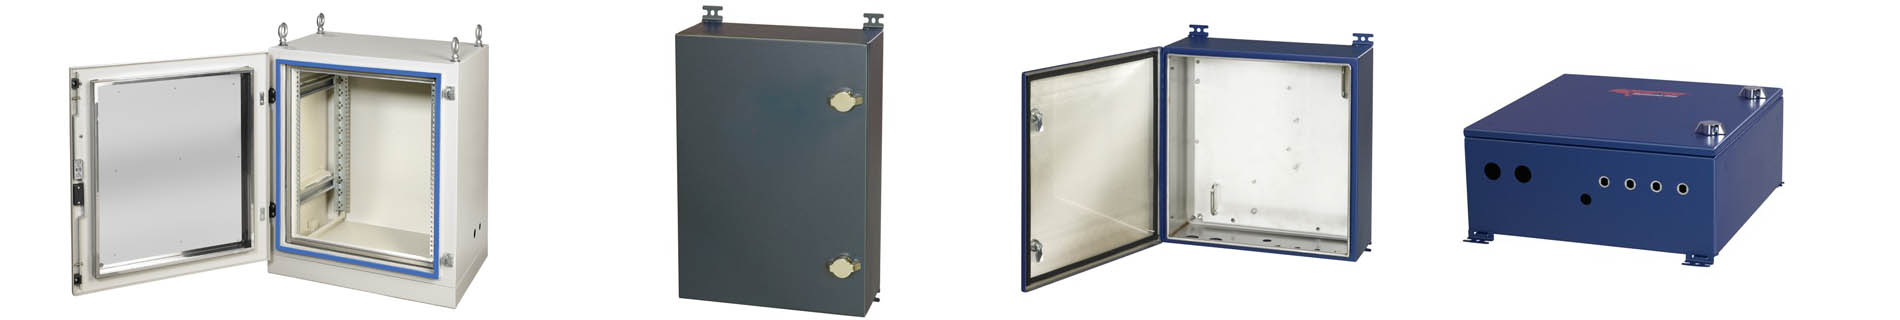 Enclosure Manufacturers banner